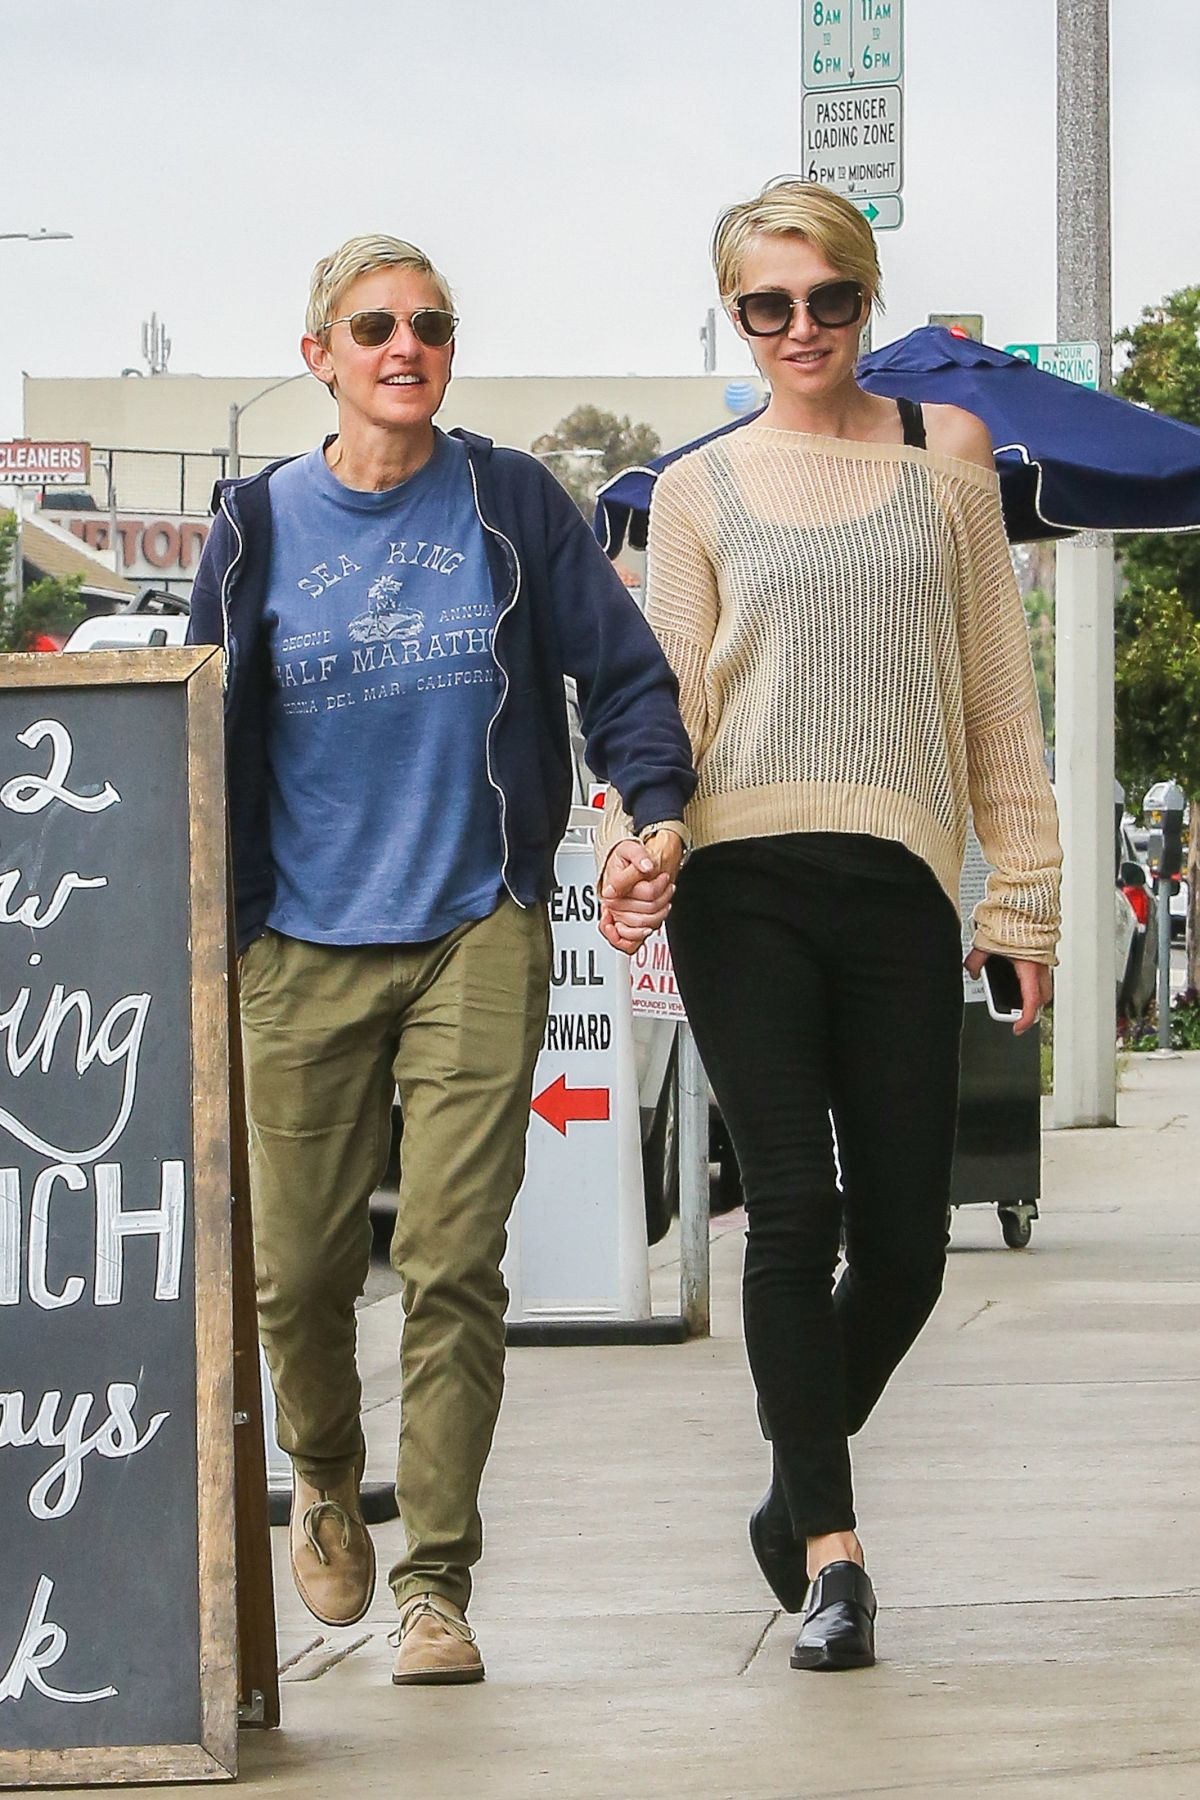 ELLEN DEGENERES and PORTIA DE ROSSI Out in West Hollywood 06/11/2016